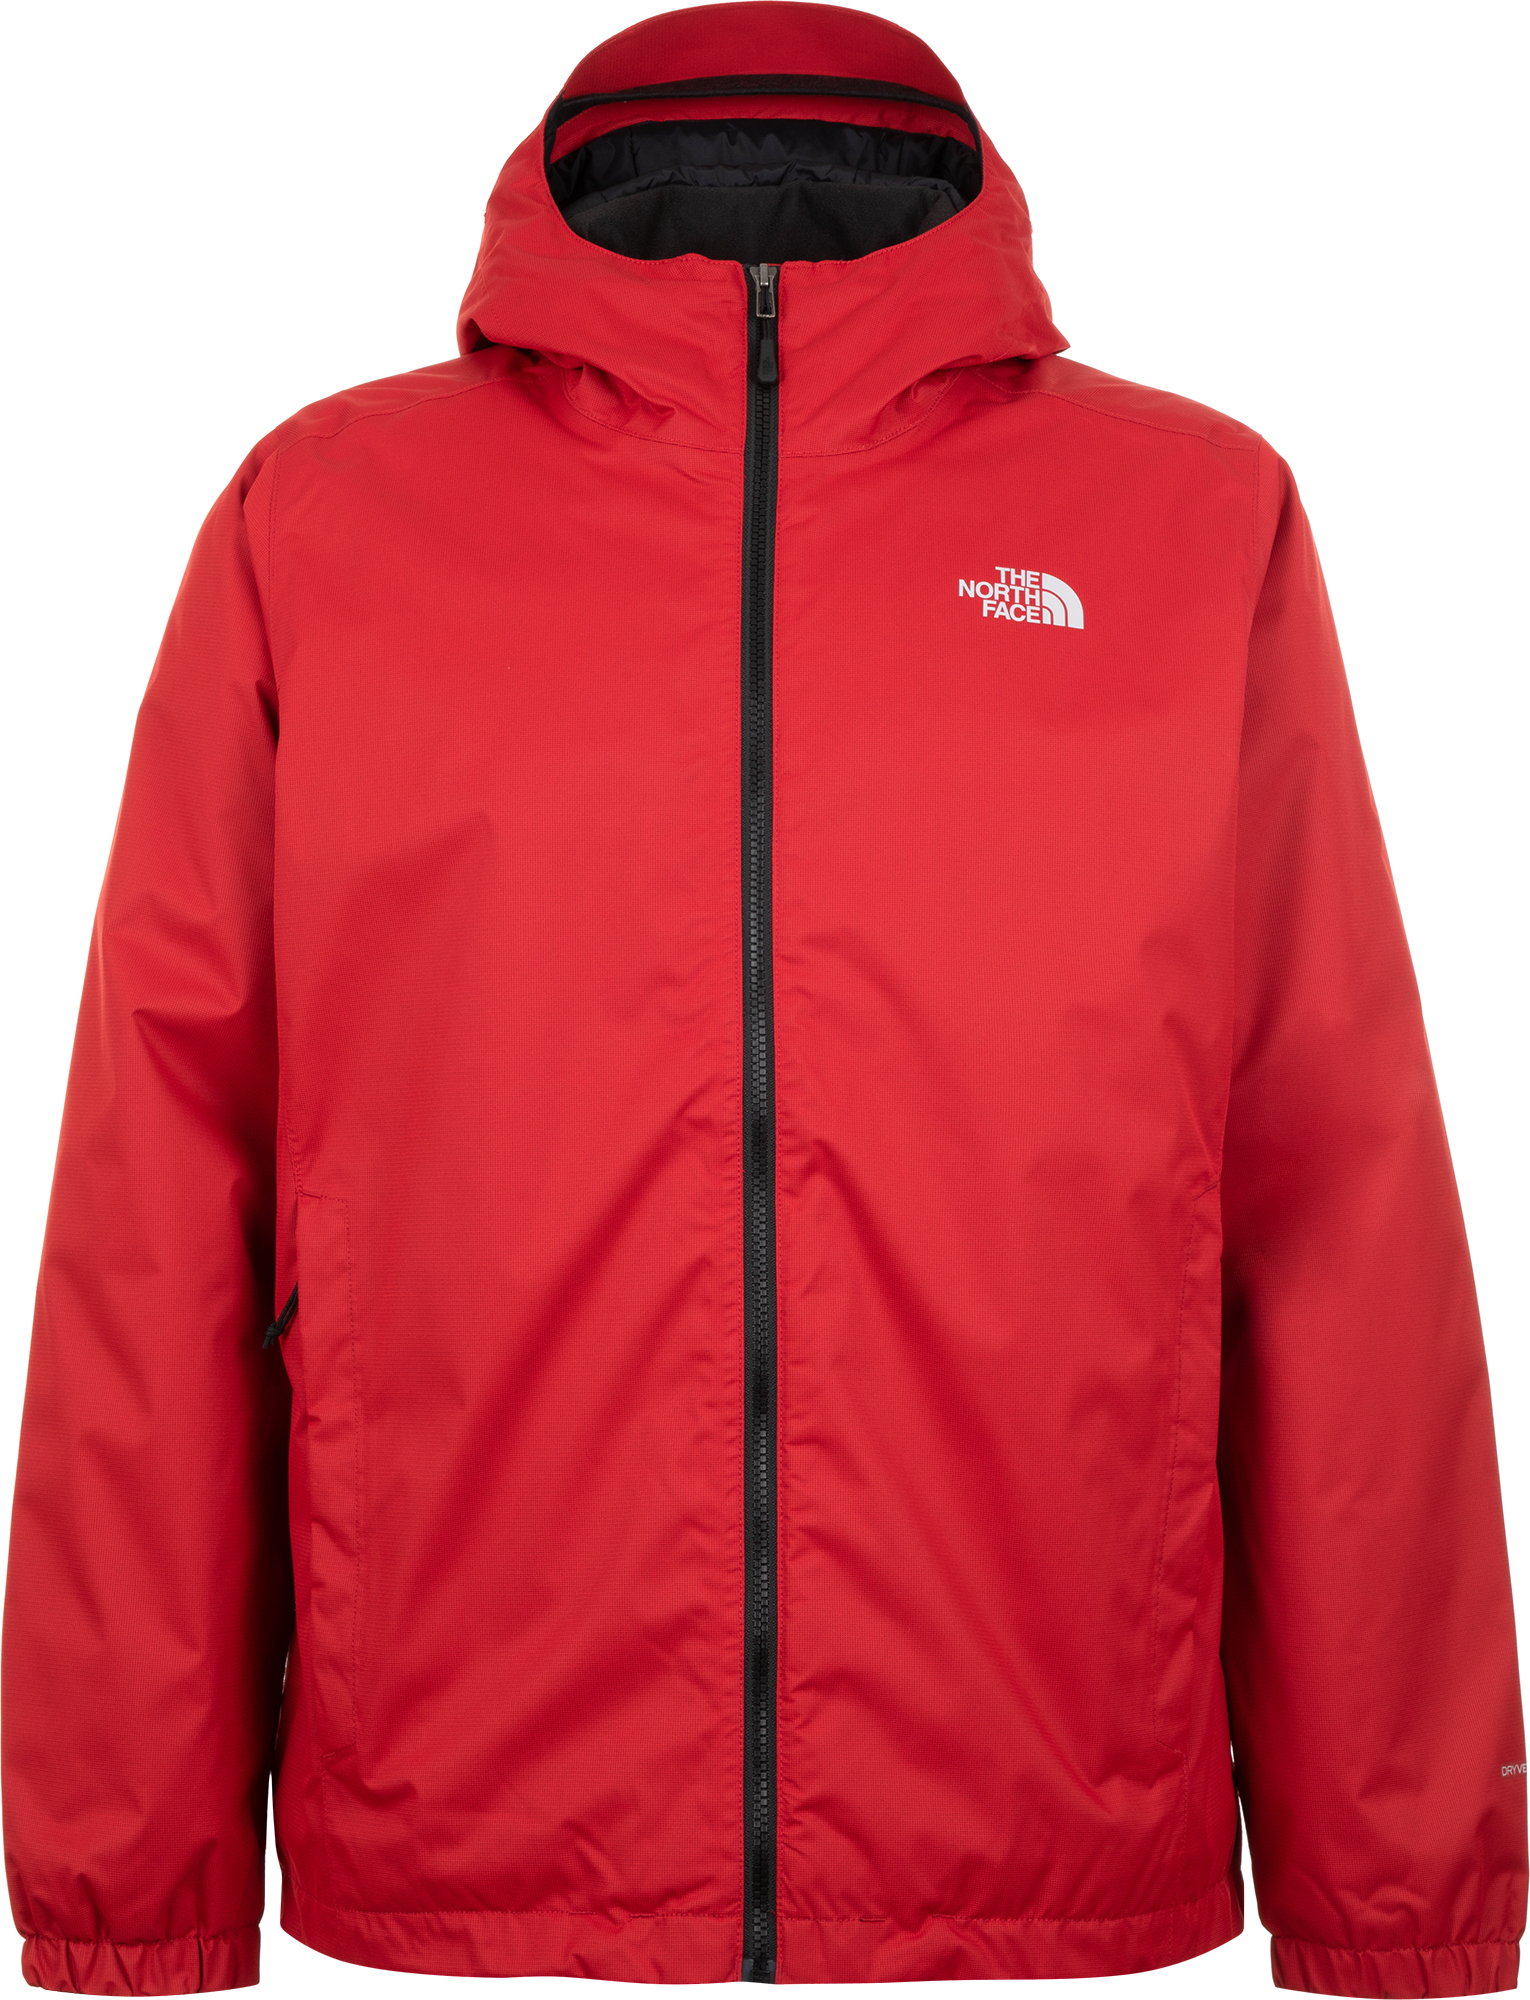 The North Face Куртка утепленная мужская The North Face Quest Insulated, размер 52 vision quest